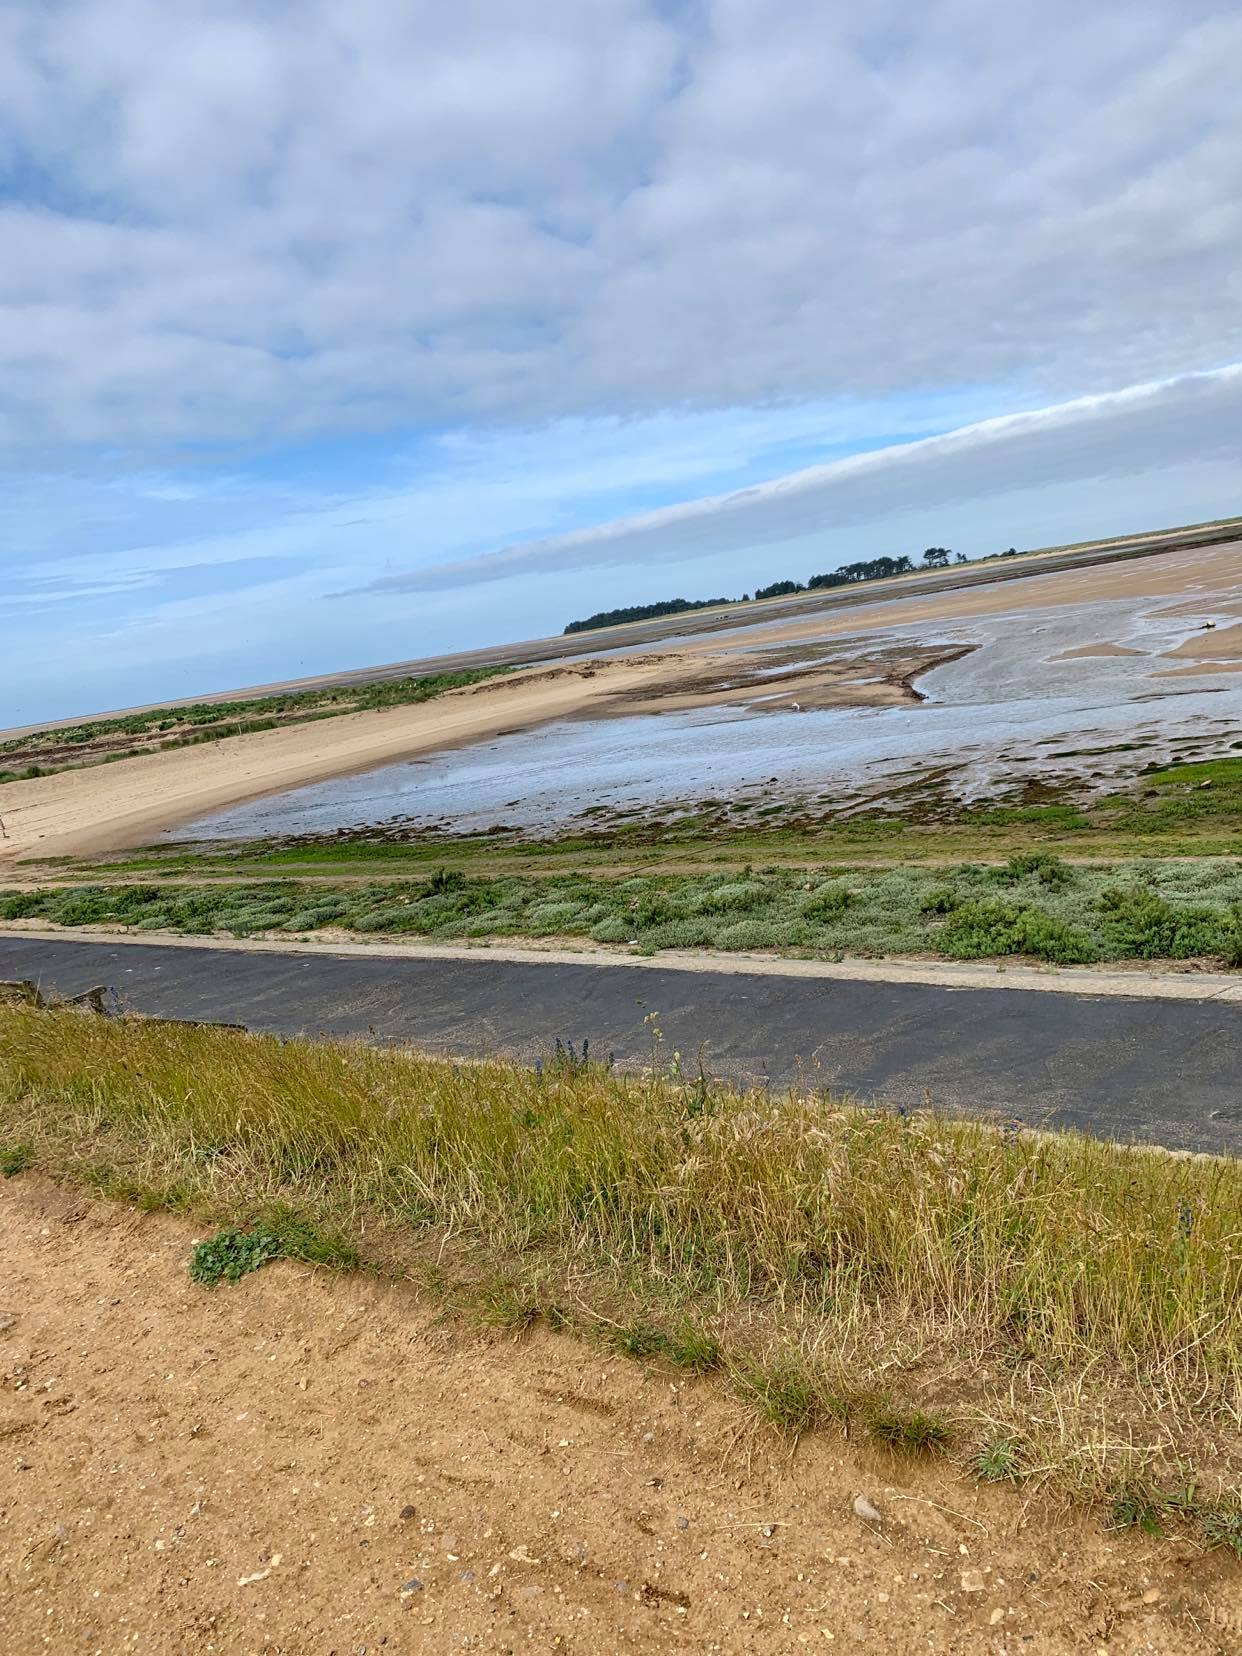 wells next to the sea, coast road walk, our pinewoods holiday review